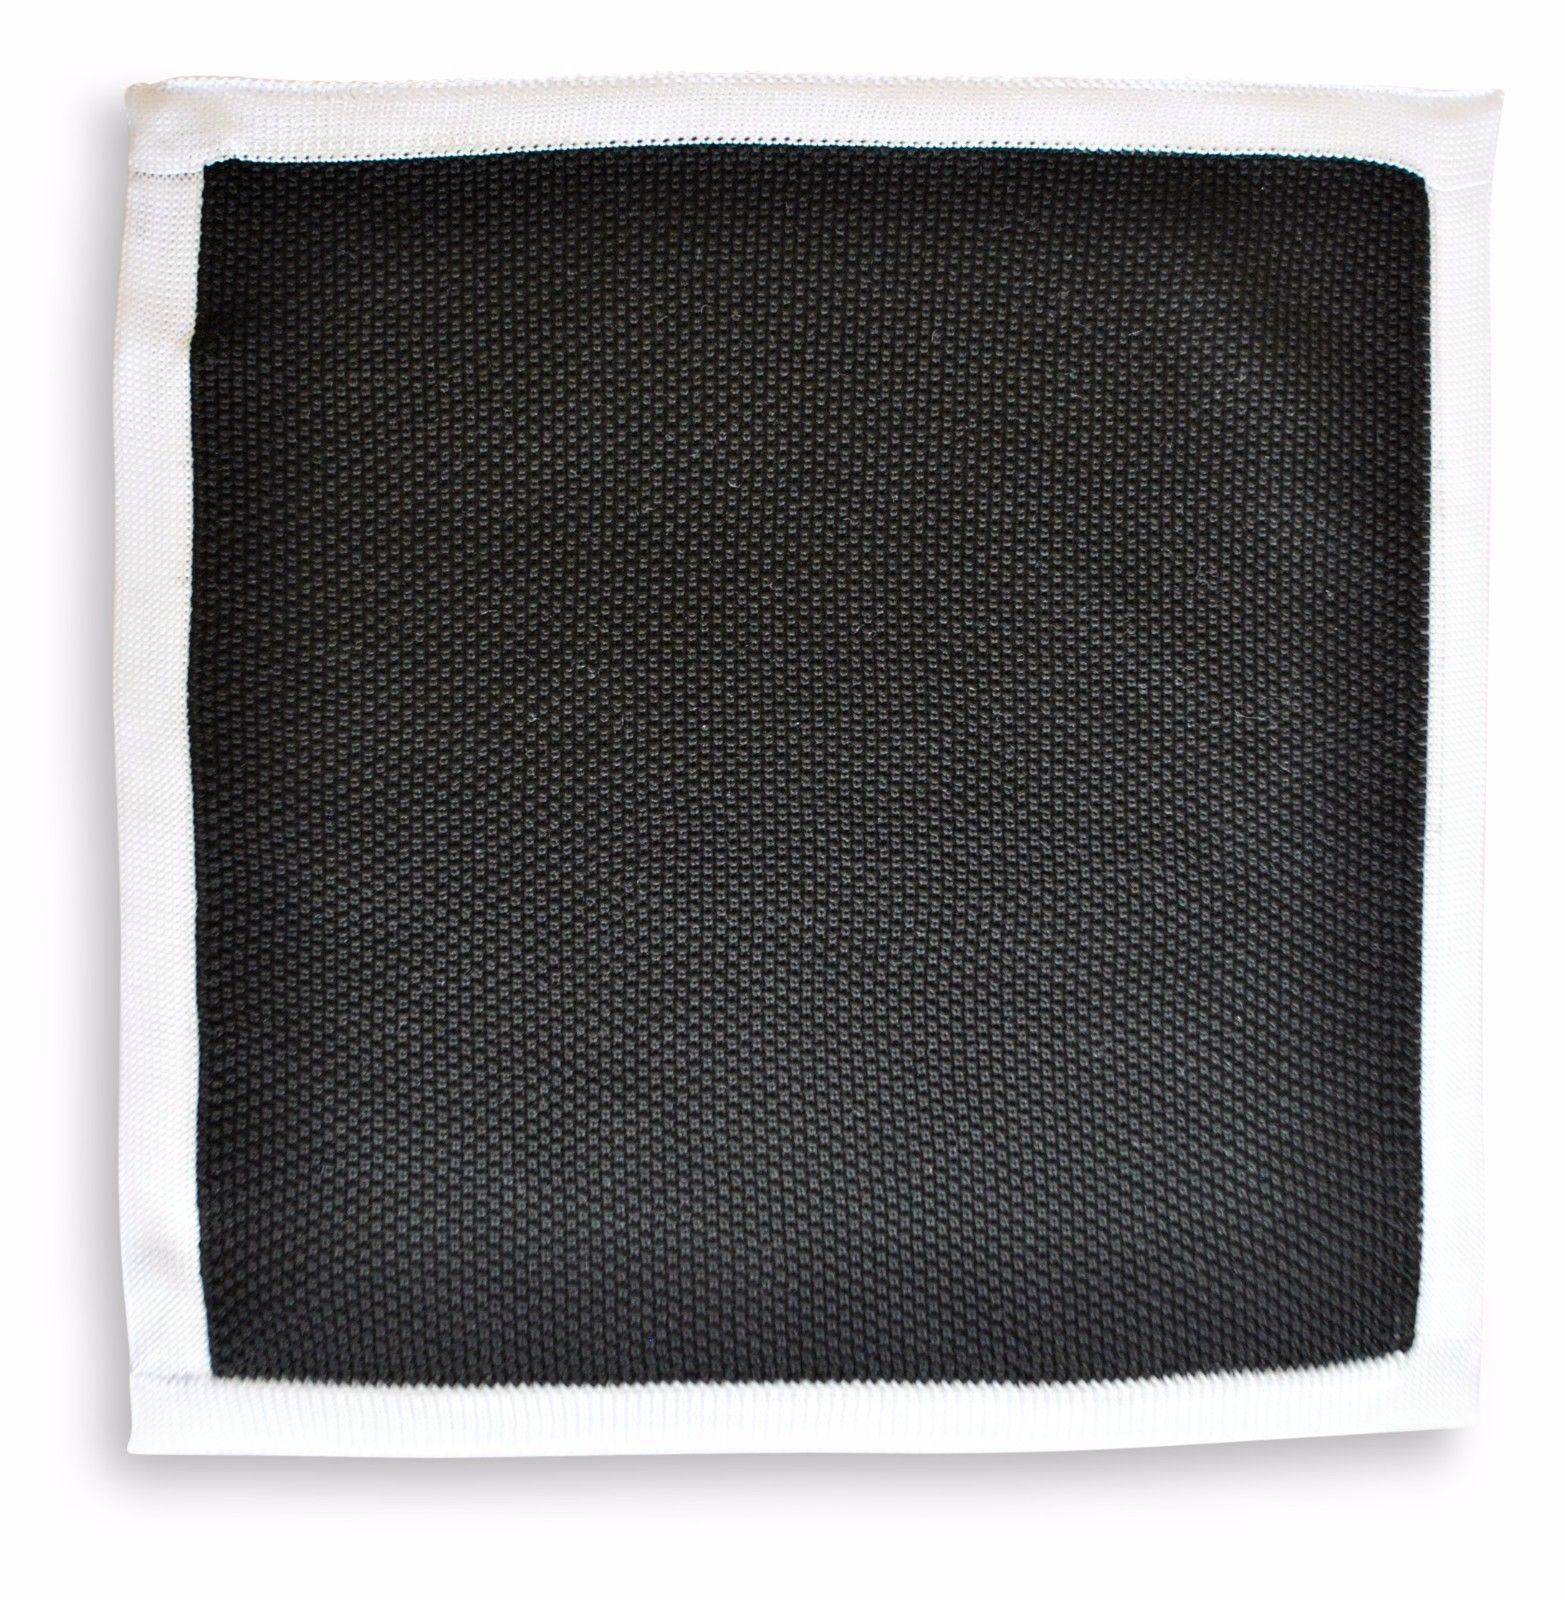 Frederick Thomas knitted pocket square handkerchief in black FT3164